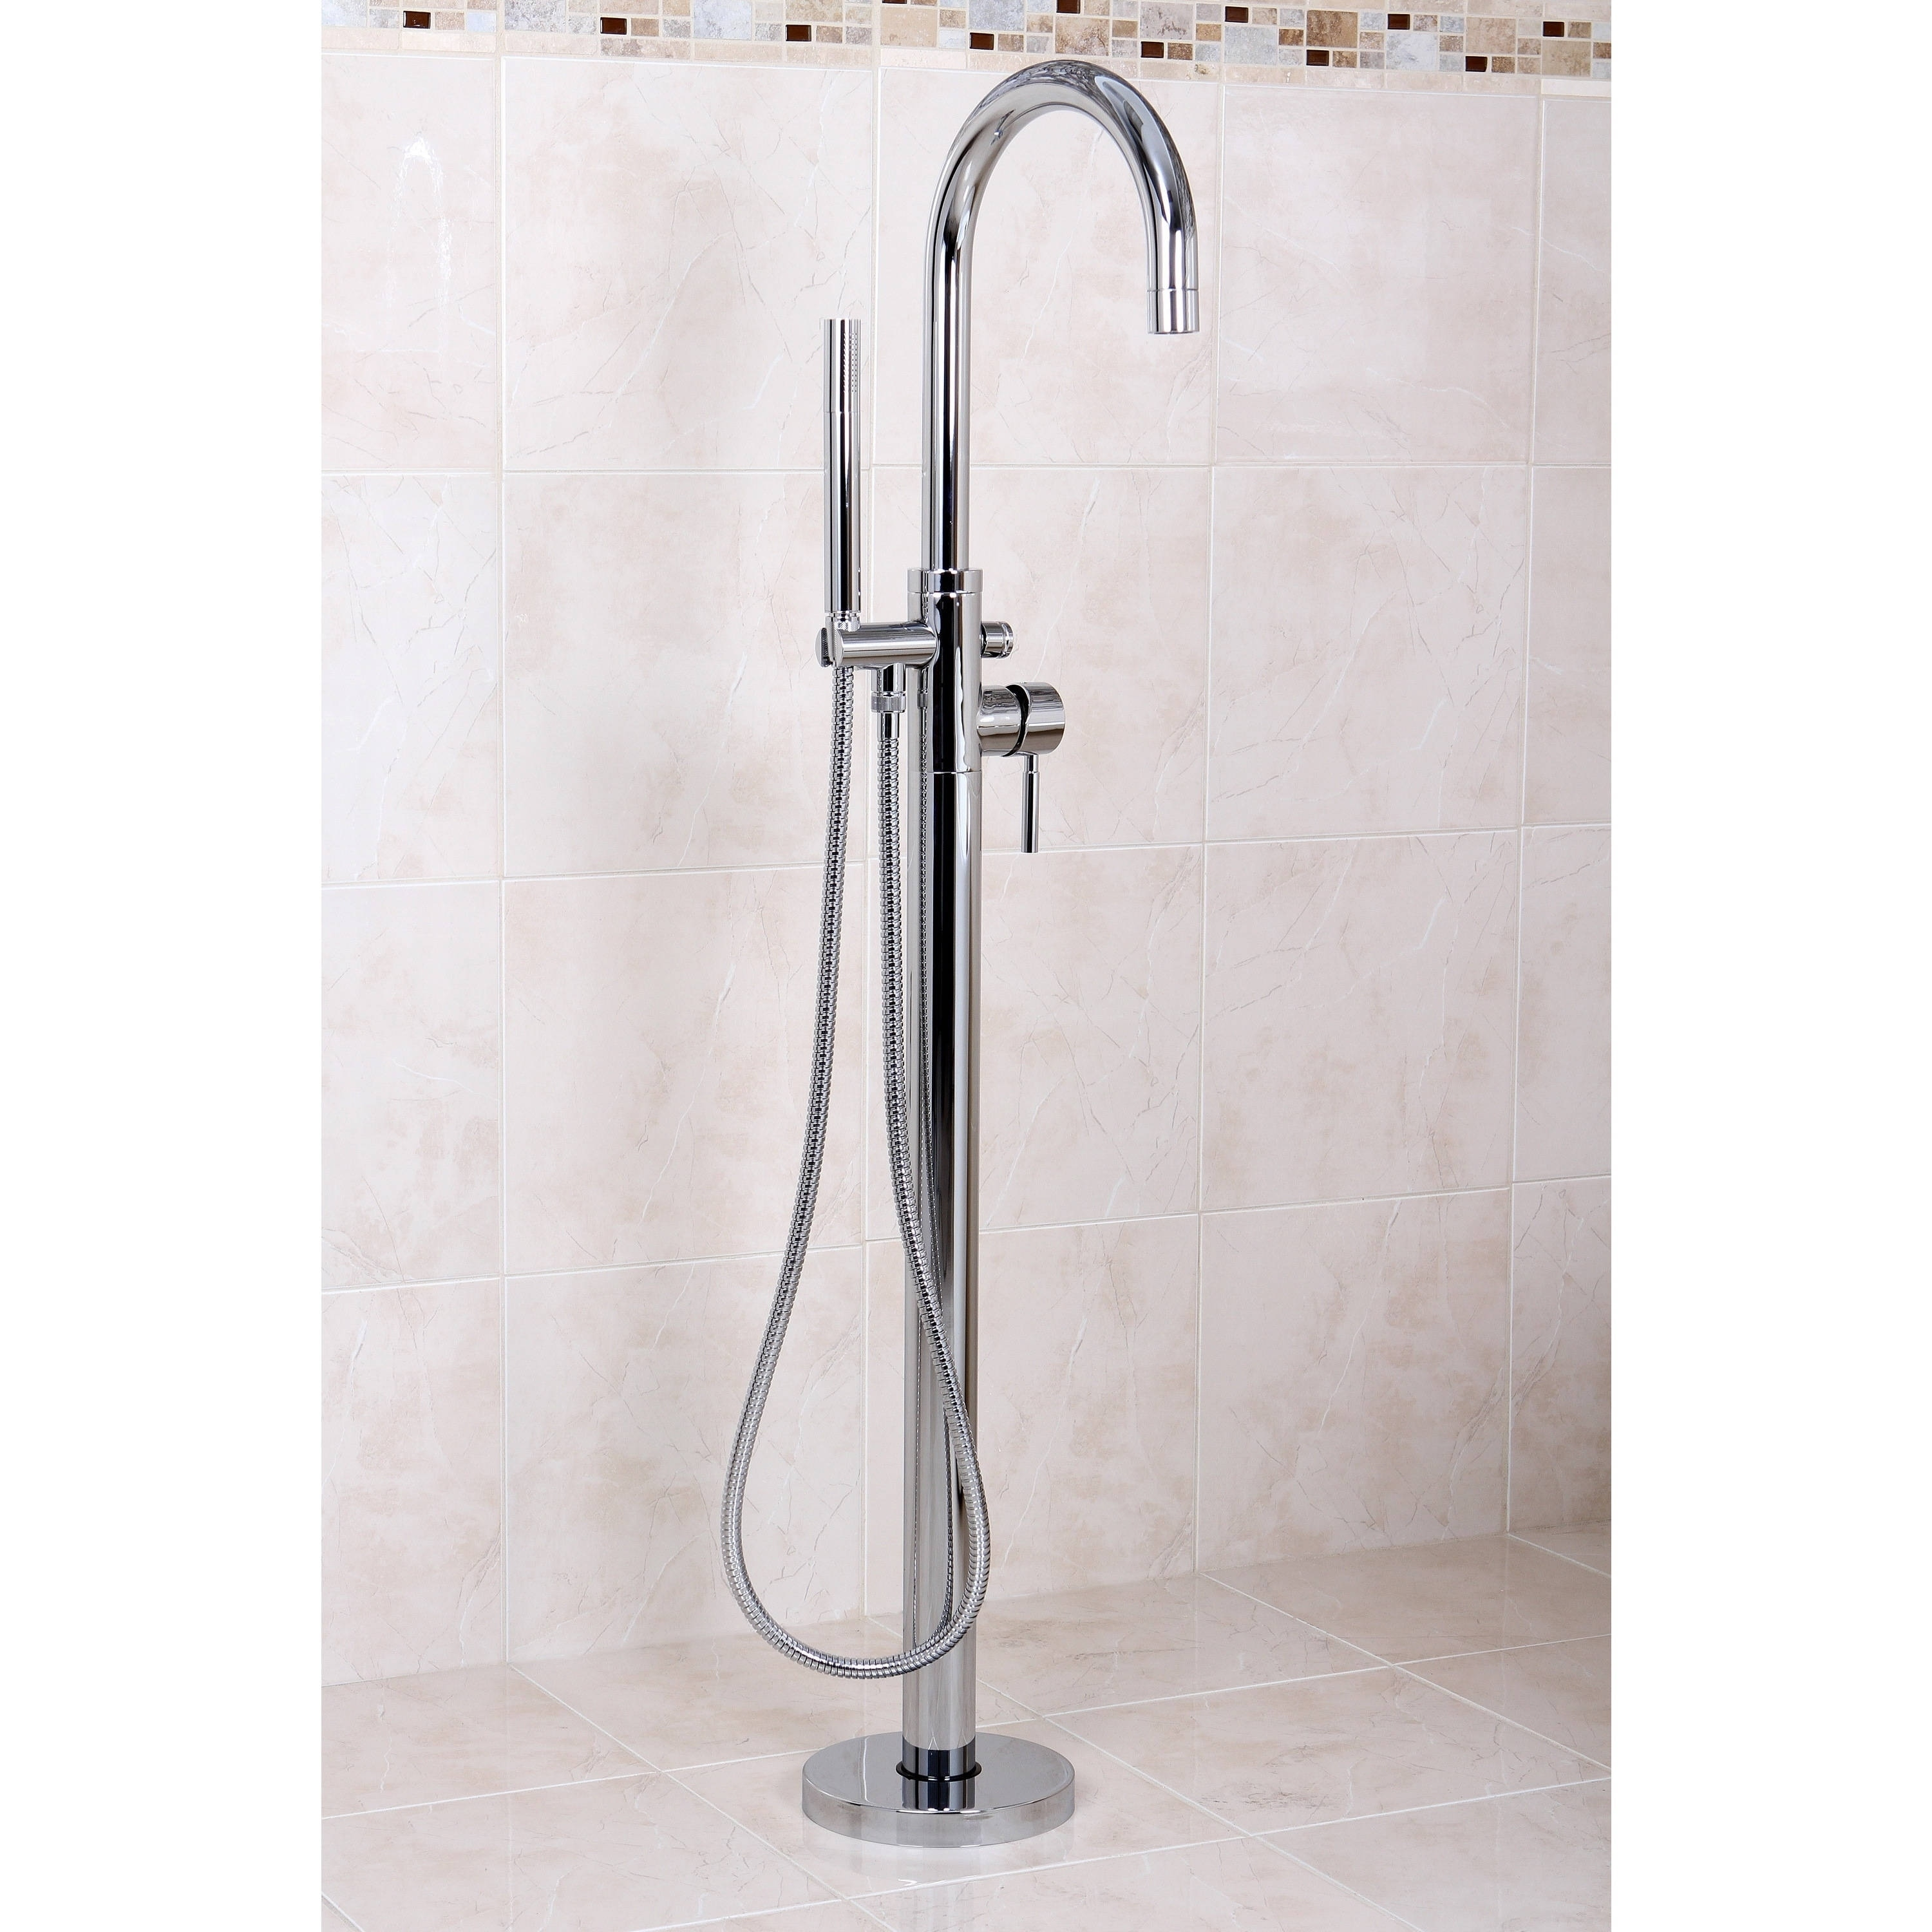 Floor Mount Chrome Tub Filler with Hand Shower - Free Shipping Today ...